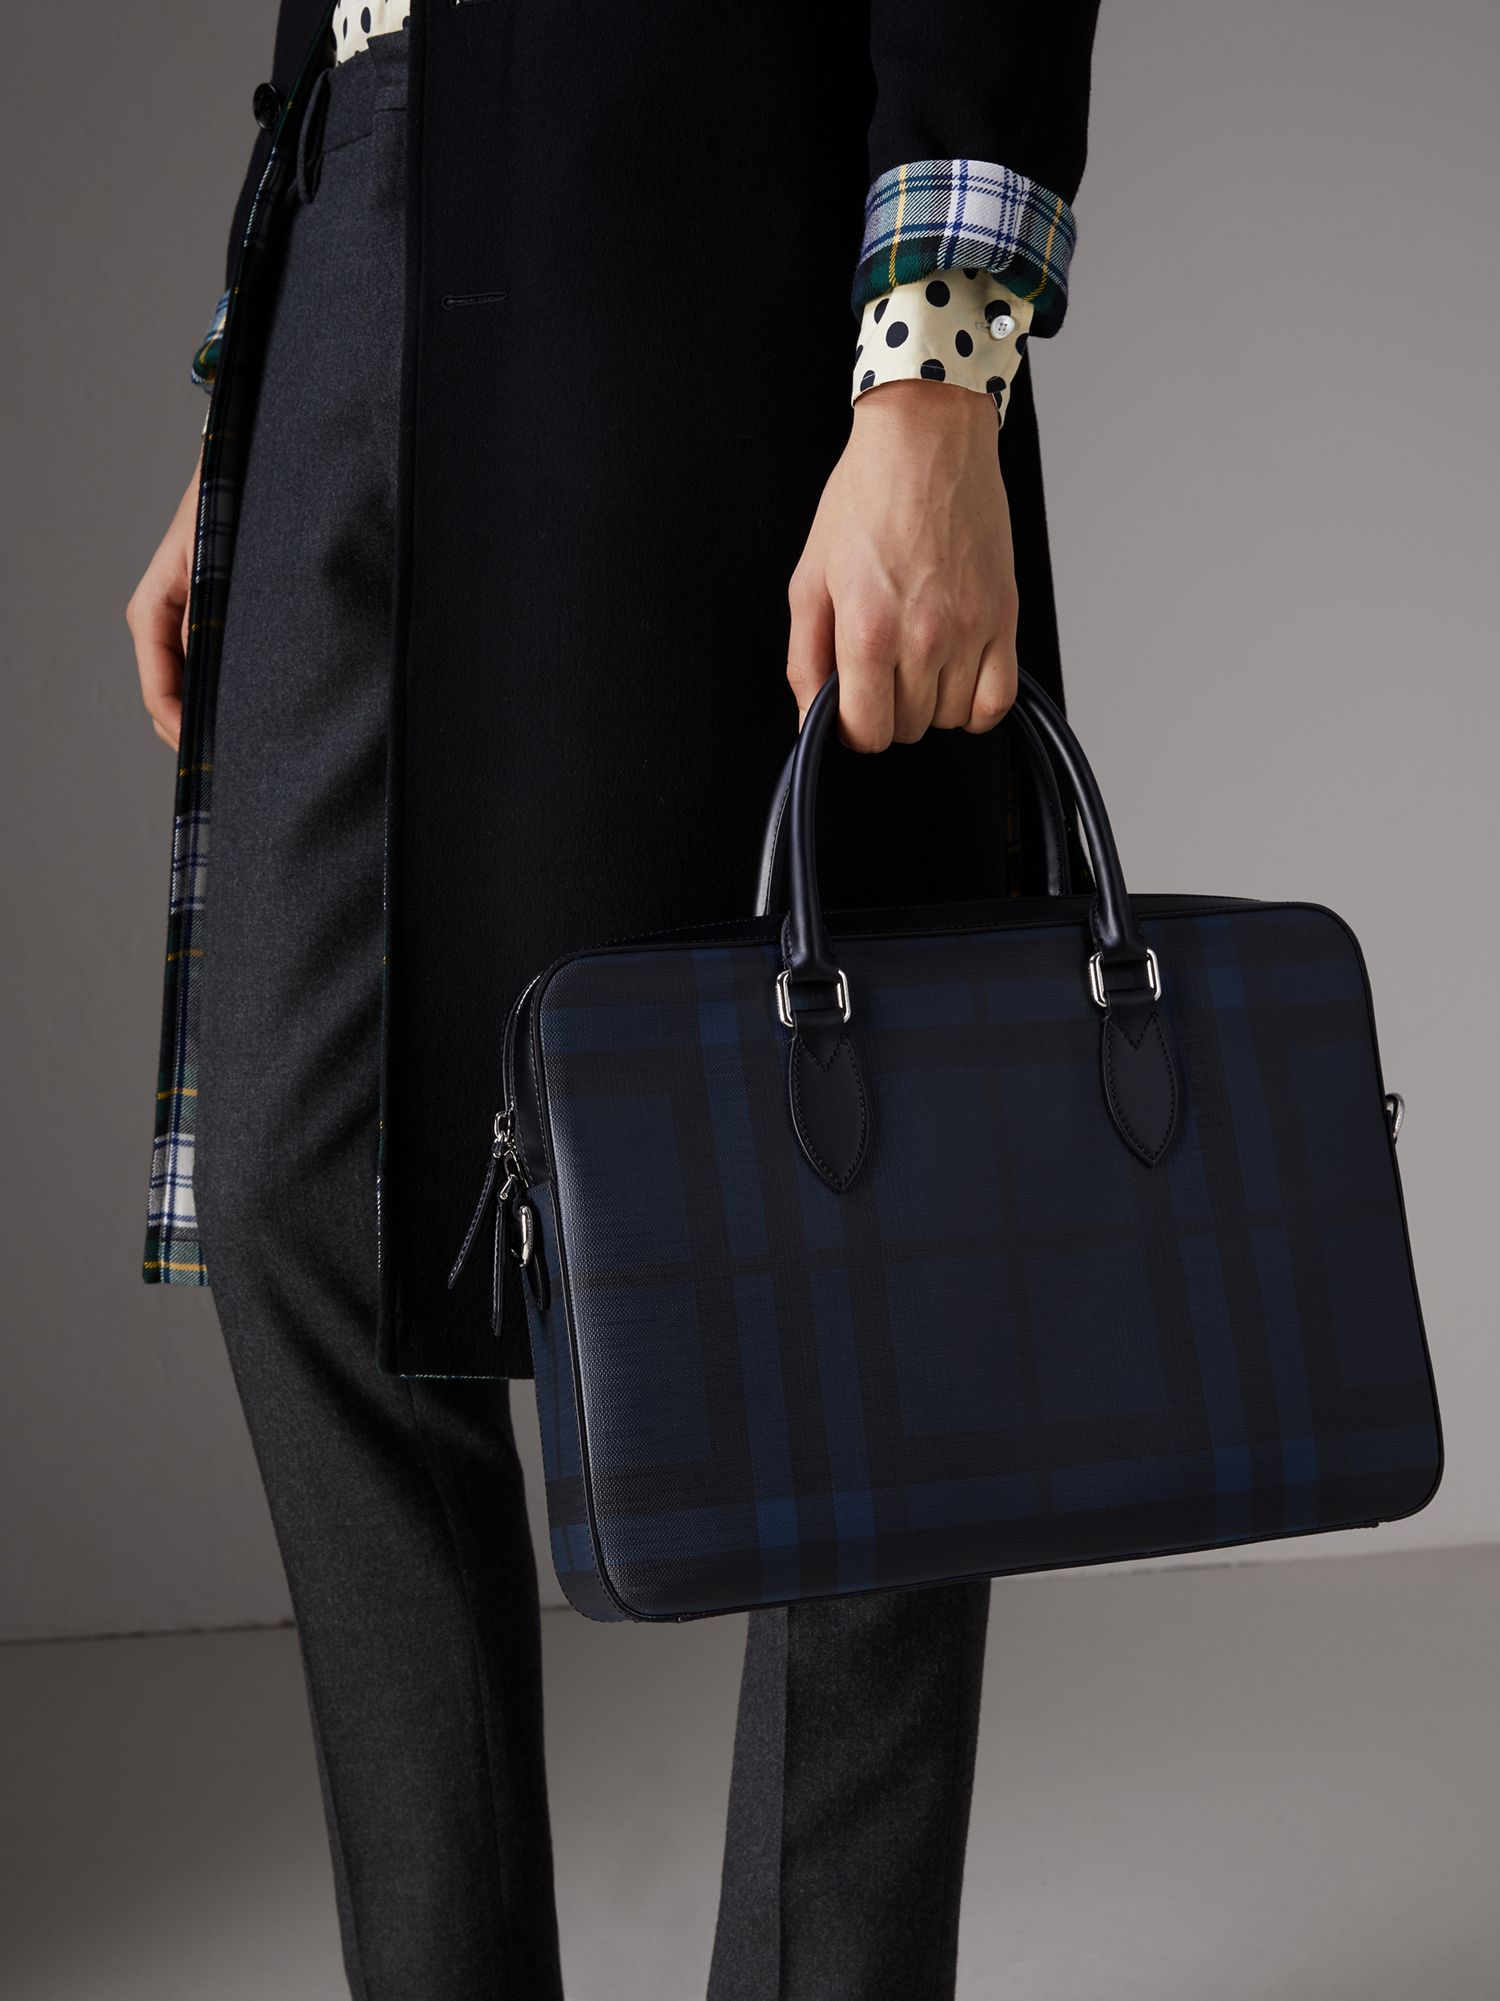 Medium Leather Trim London Check Briefcase in Navy/black